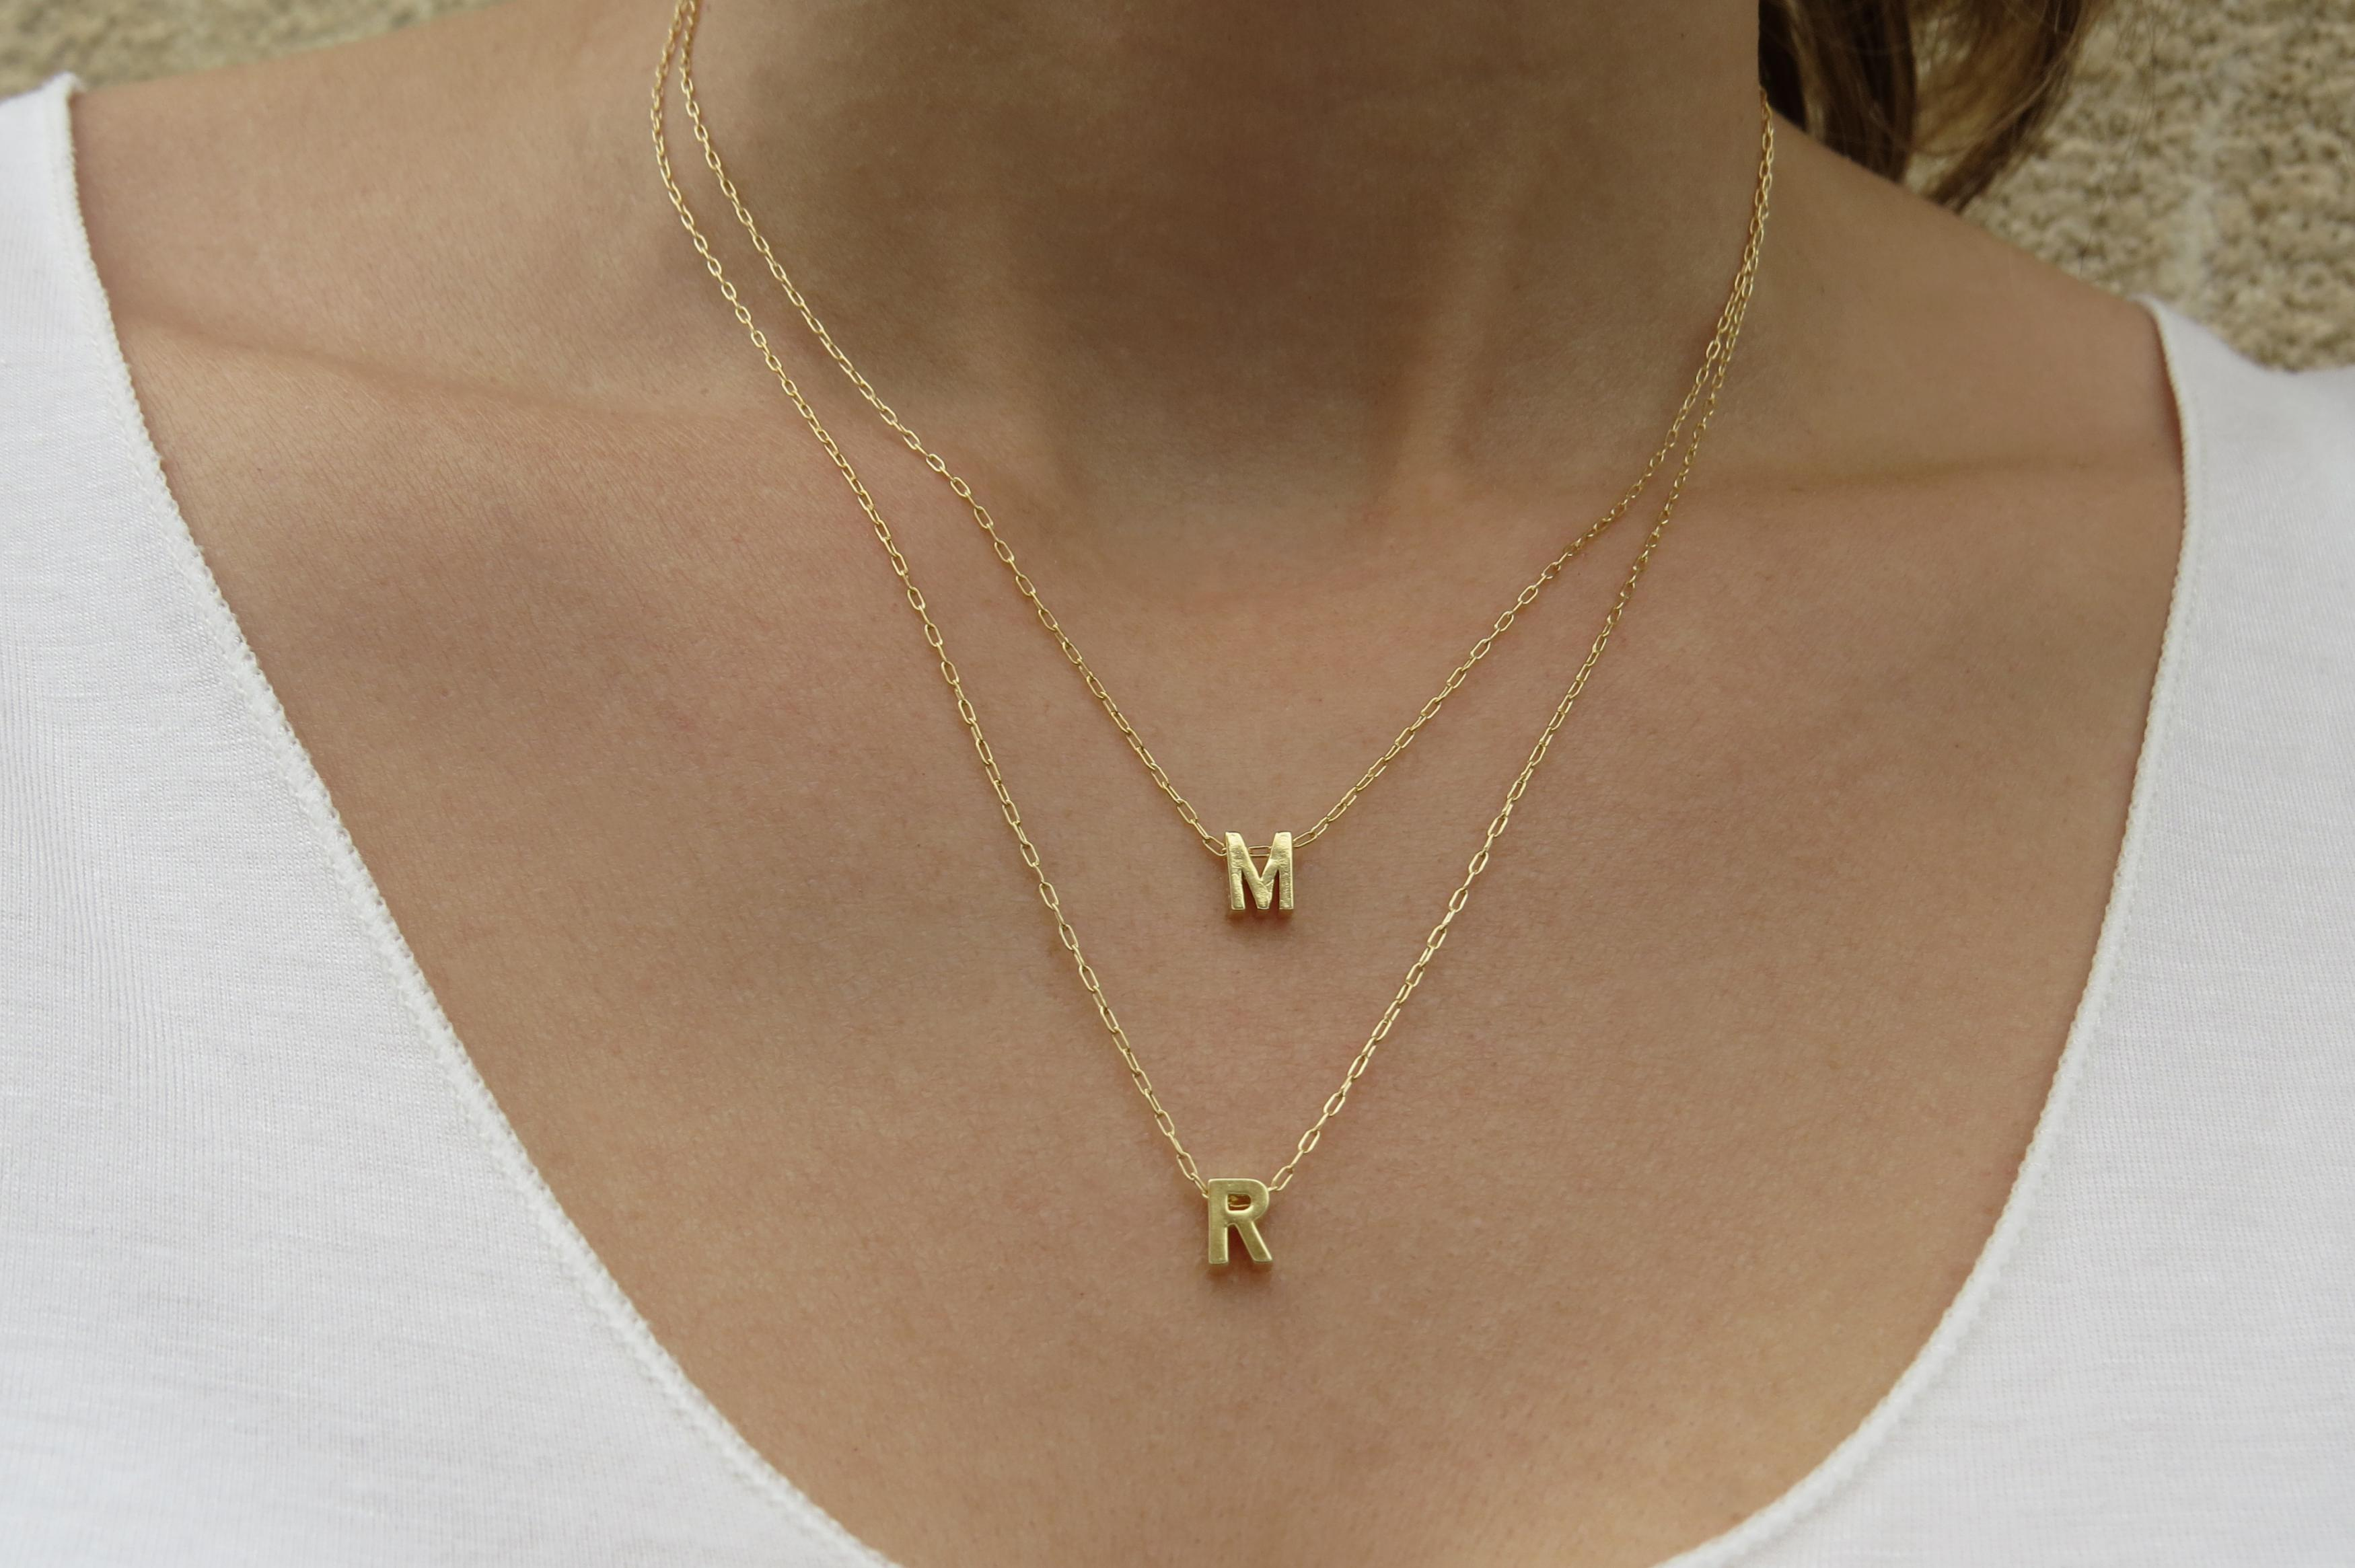 genuine pin description yellow gold solid material name chain necklace pendant rolo personalized